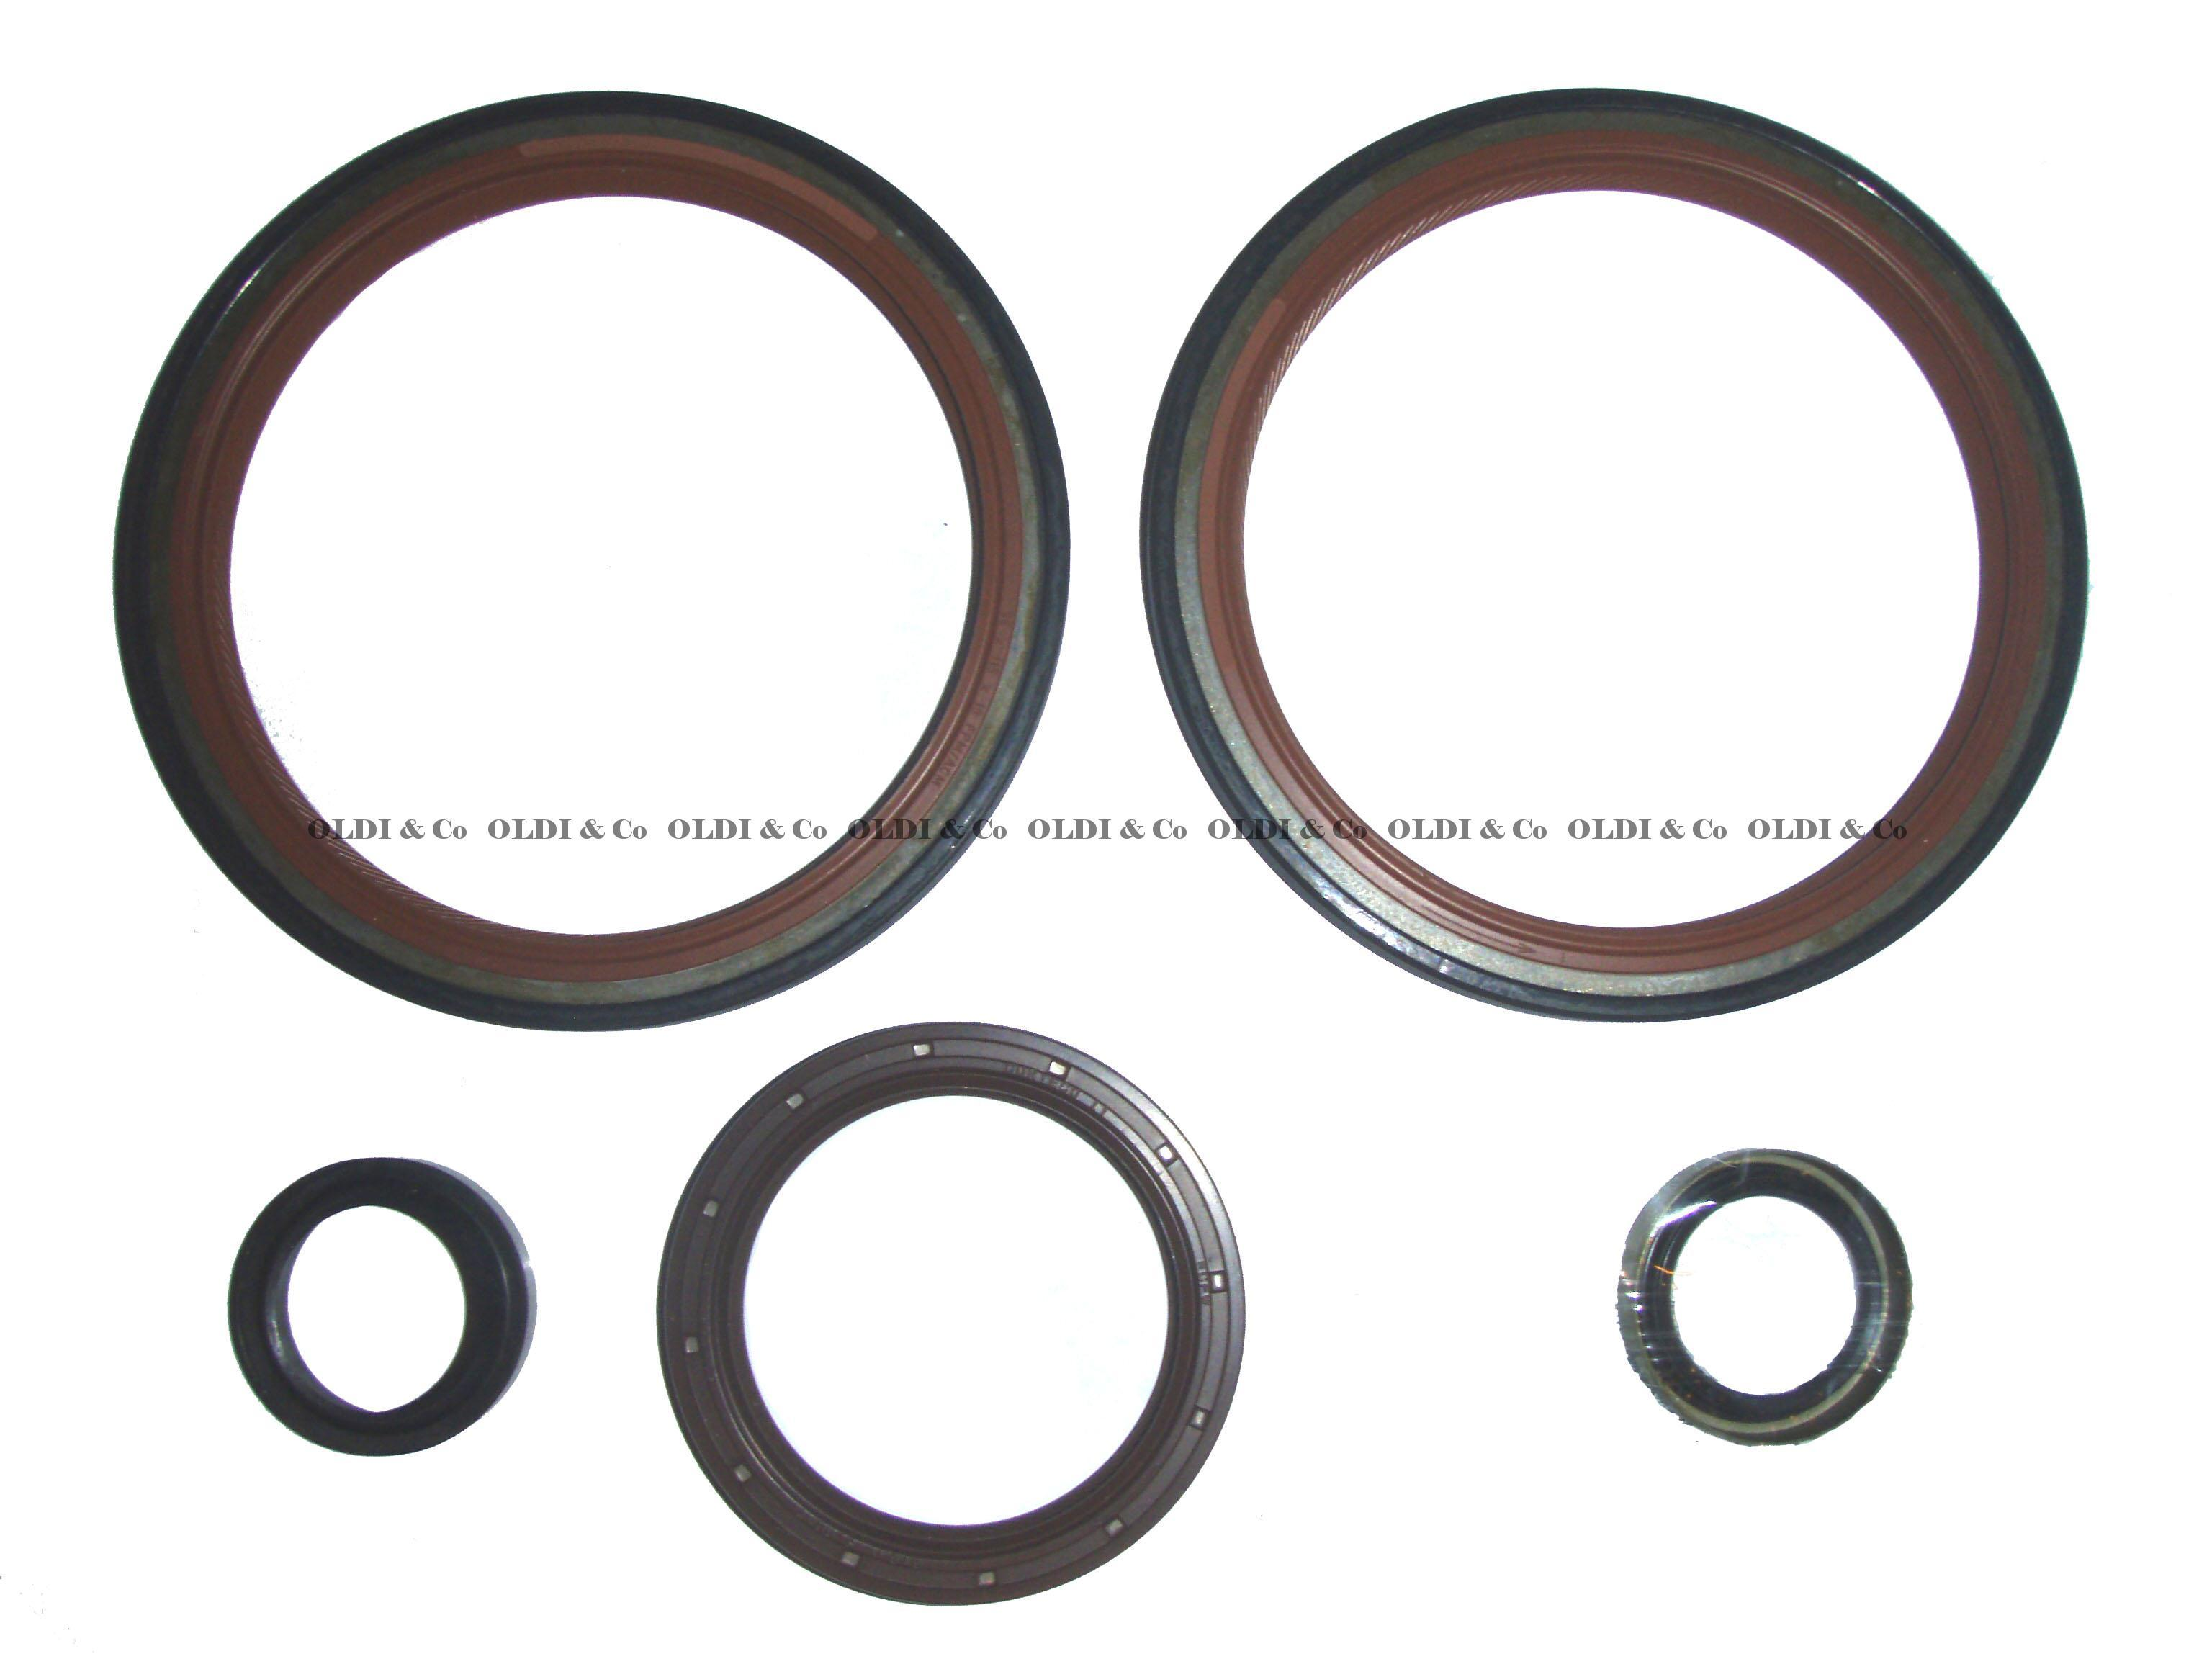 32.094.16025 - Детали КПП - Комплект сальников - Transmission parts - Oil seal kit - CEI - 298.027; EURORICAMBI - 95.53.1563; INFO - 1304 298 939, 1304298939; IVECO - 93161445; MAN - 81.32900-6044; OLDI - 32.094.16025; RENAULT - 5001823976; Z.F. - 1304.298.939